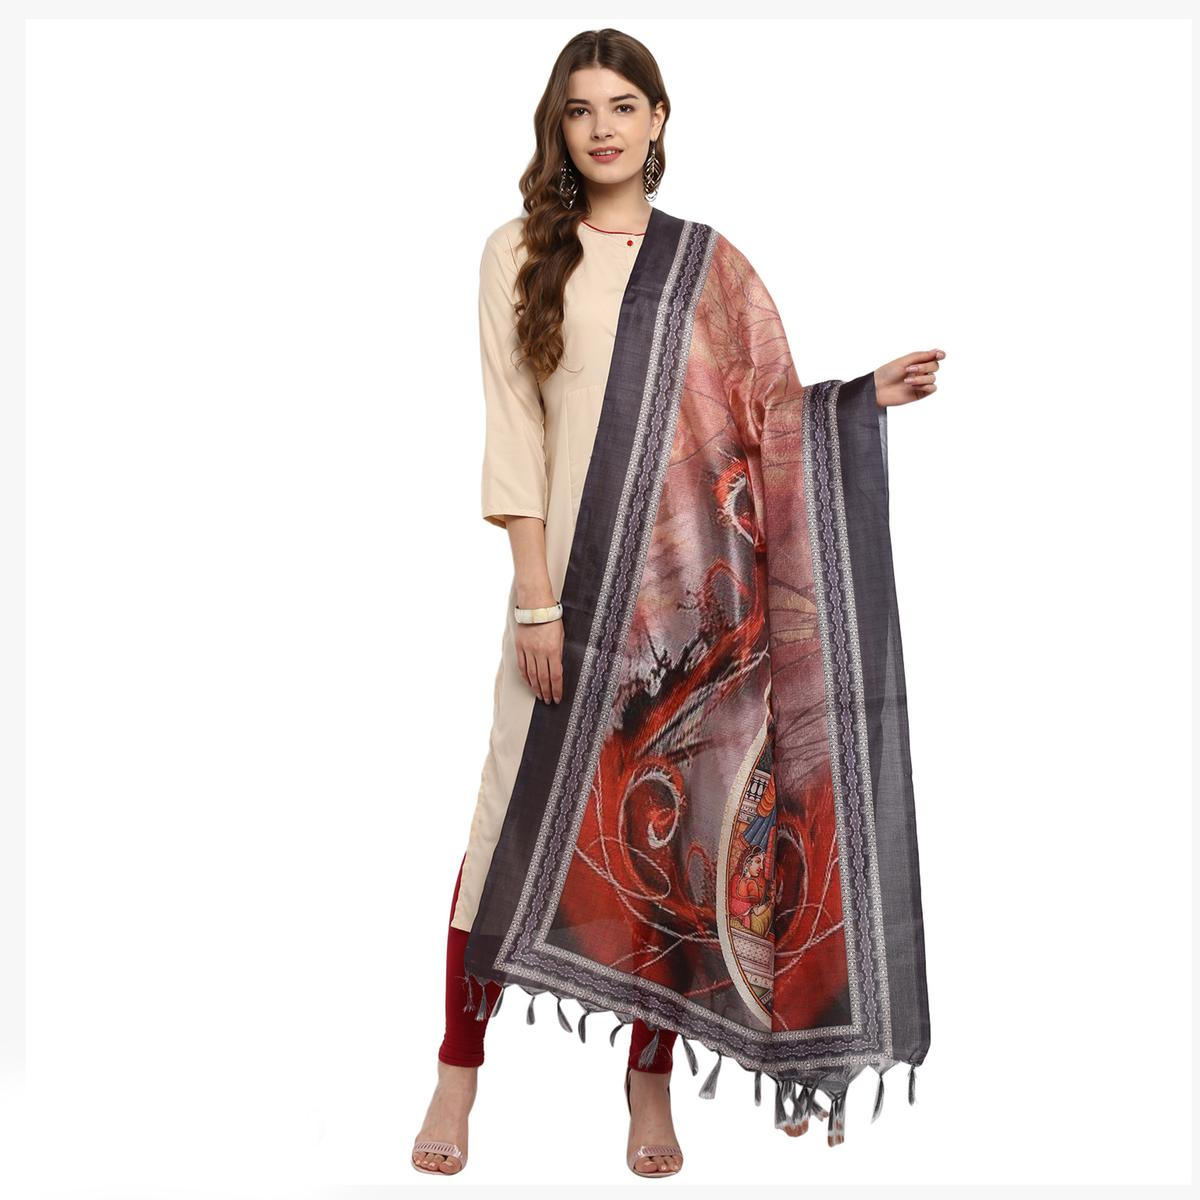 Blissful Grey-Peach Colored Digital Printed Khadi Silk Dupatta